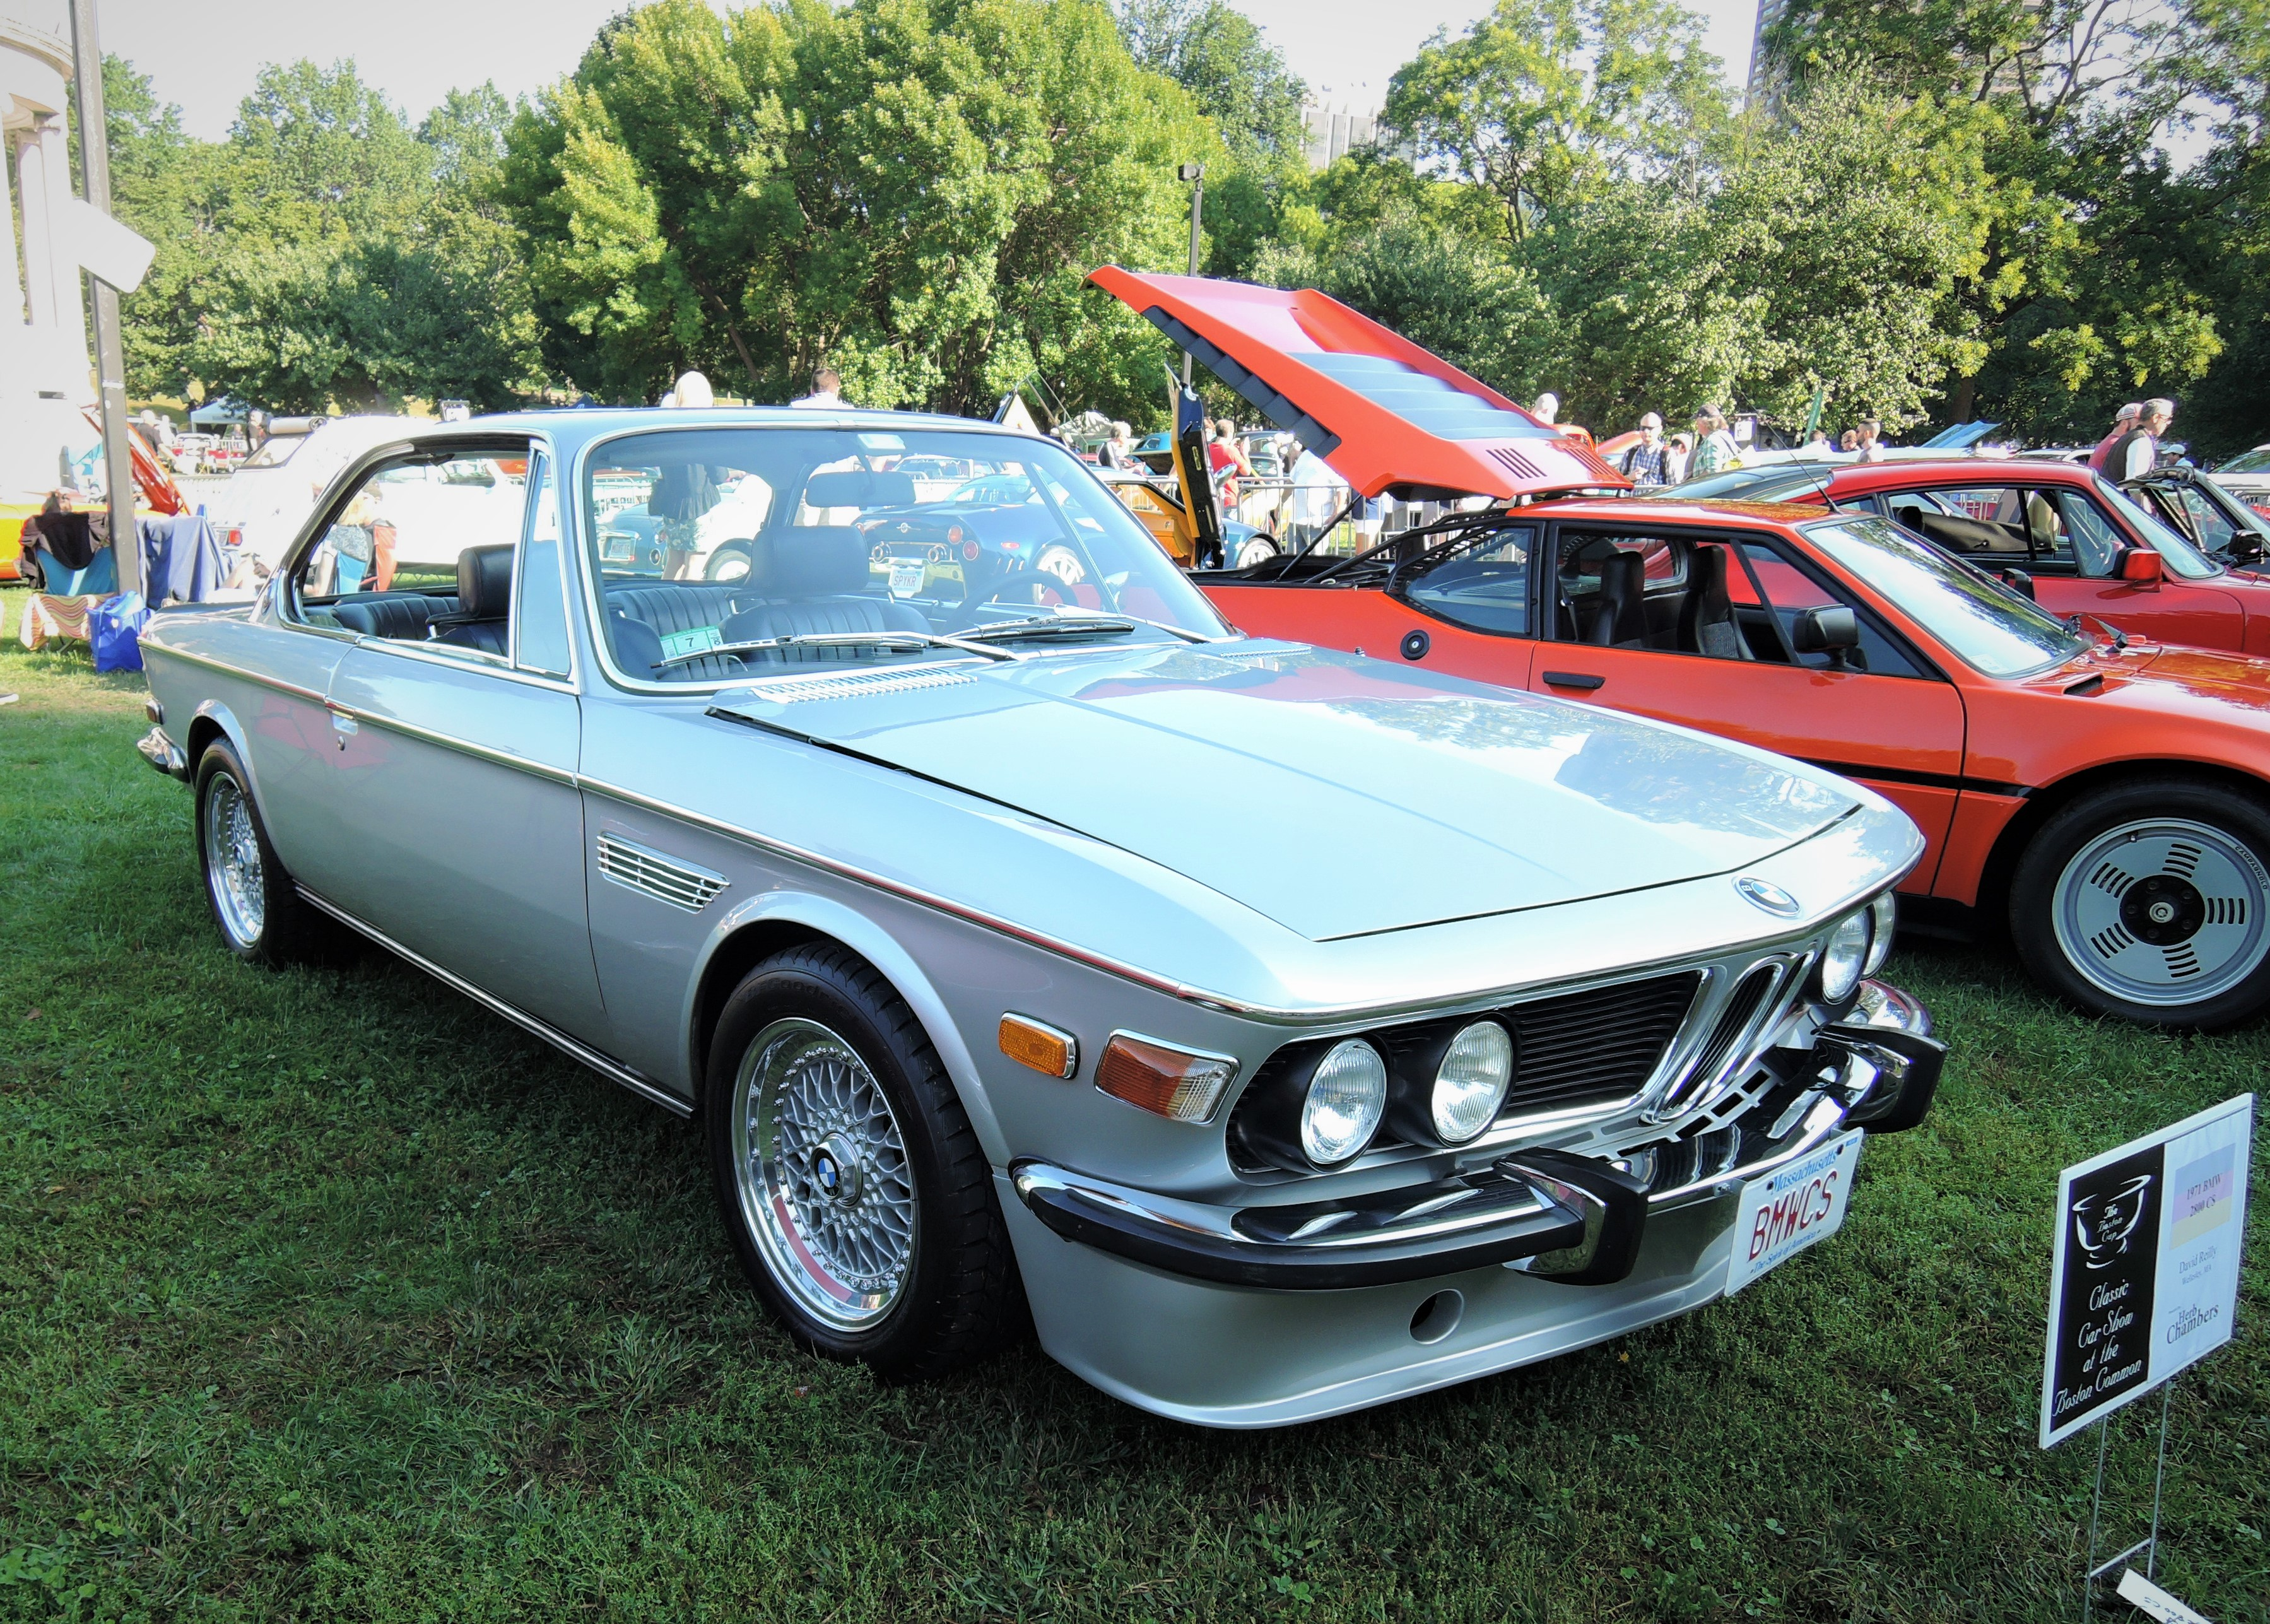 silver 1971 BMW 2800 CS - The Boston Cup 2017